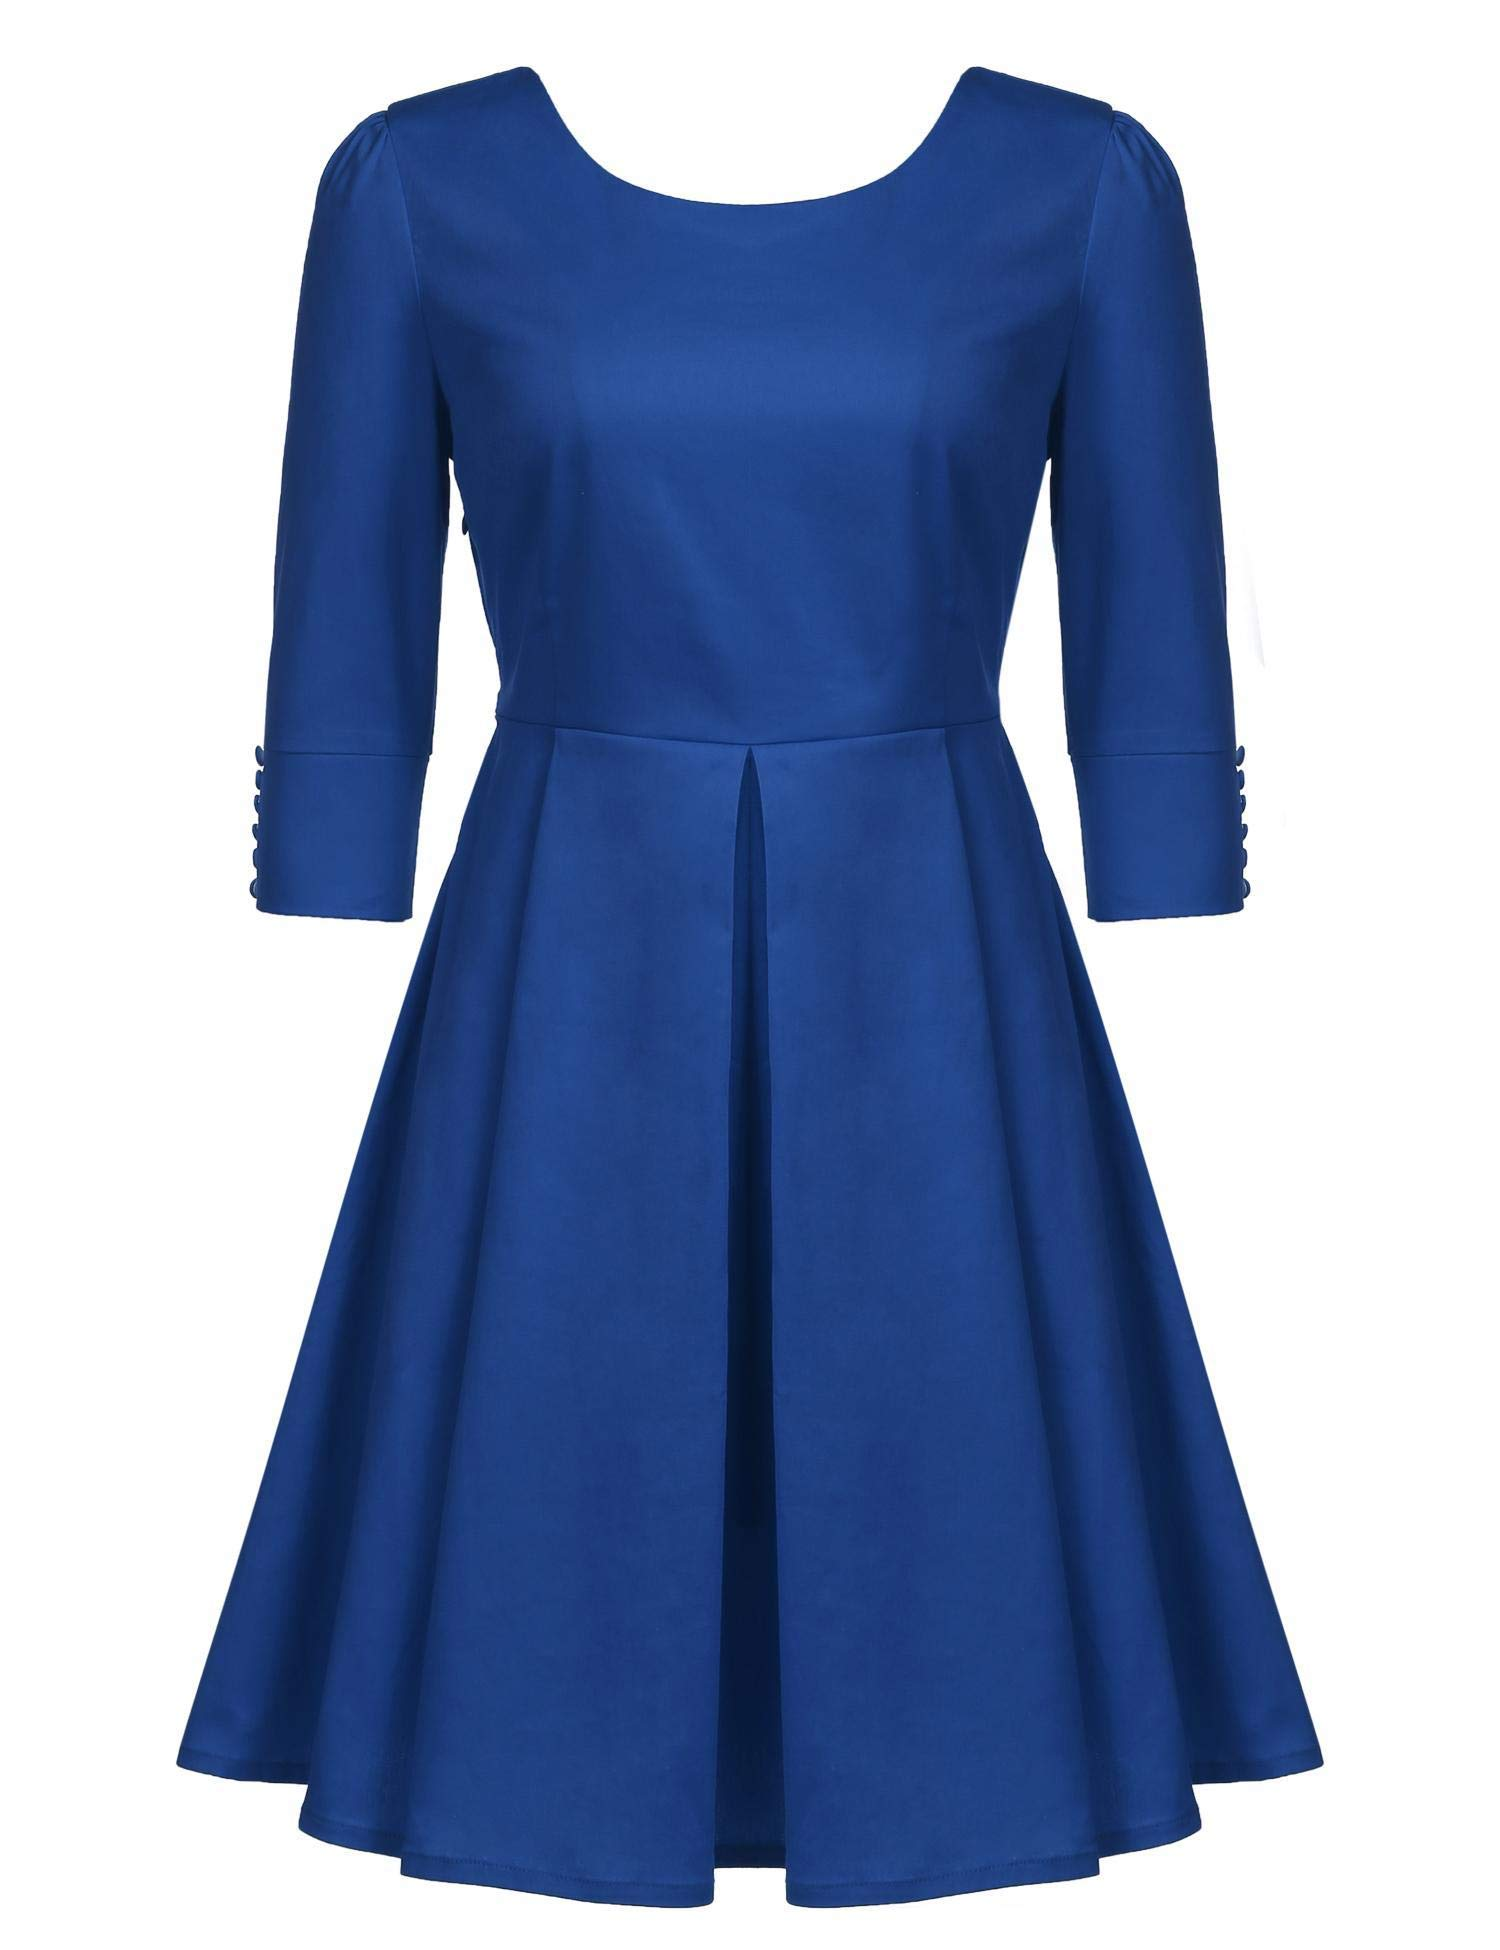 Available at Amazon: ELESOL Women's Casual Swing Dresses Short Sleeve A-Line Tea Dress Cocktail Party Dress